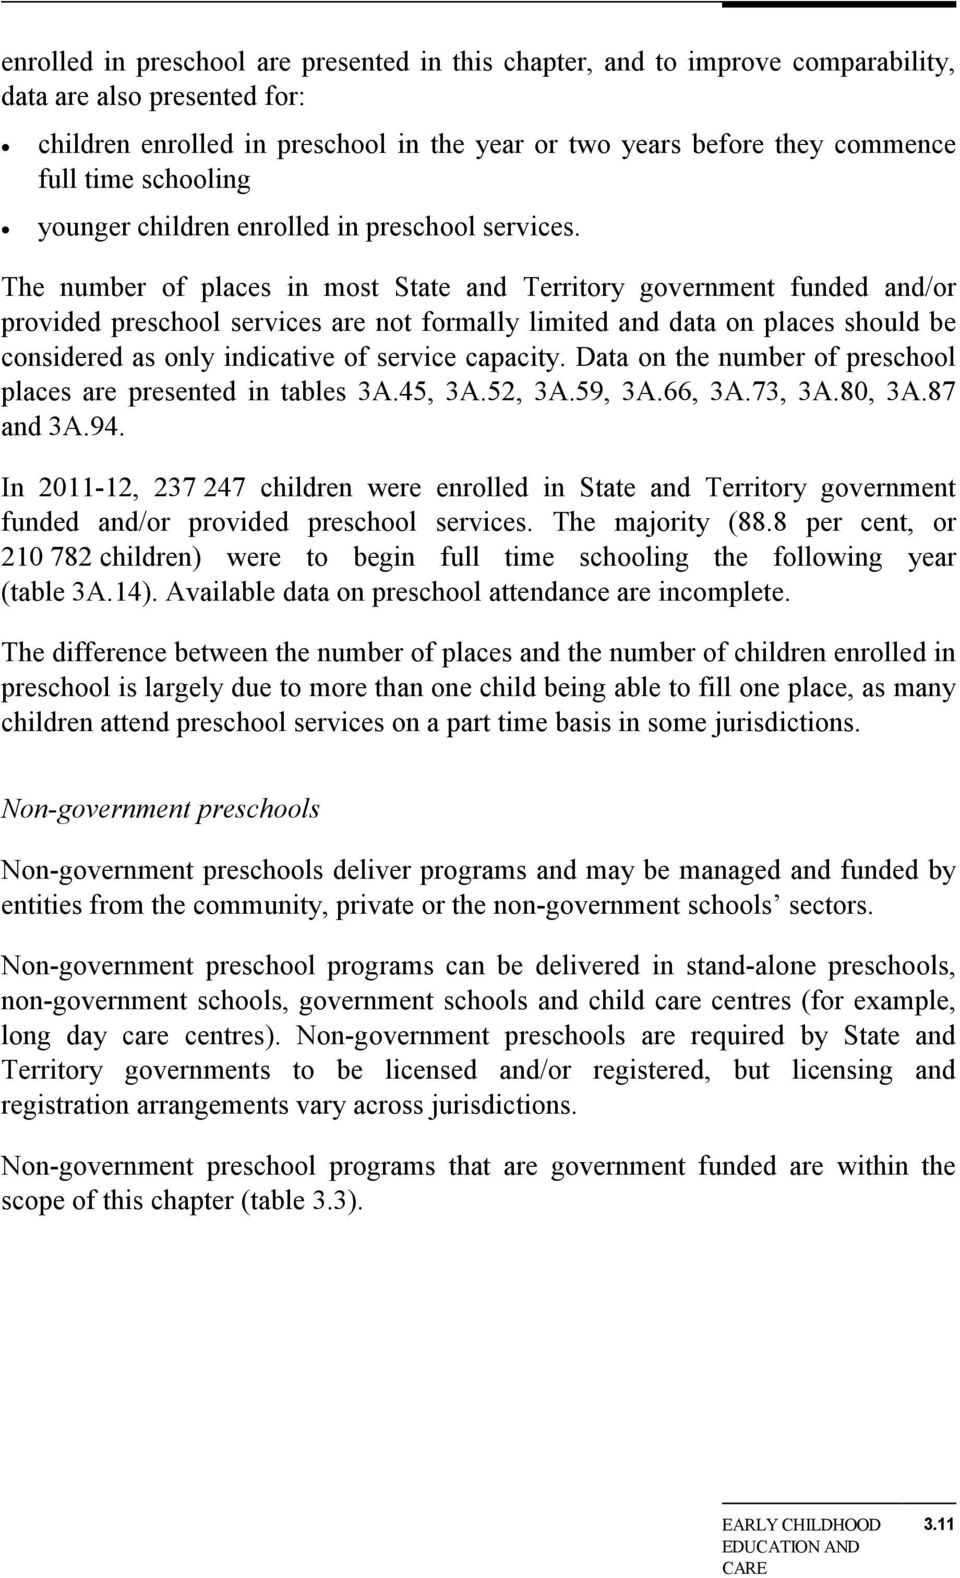 The number of places in most State and Territory government funded and/or provided preschool services are not formally limited and data on places should be considered as only indicative of service